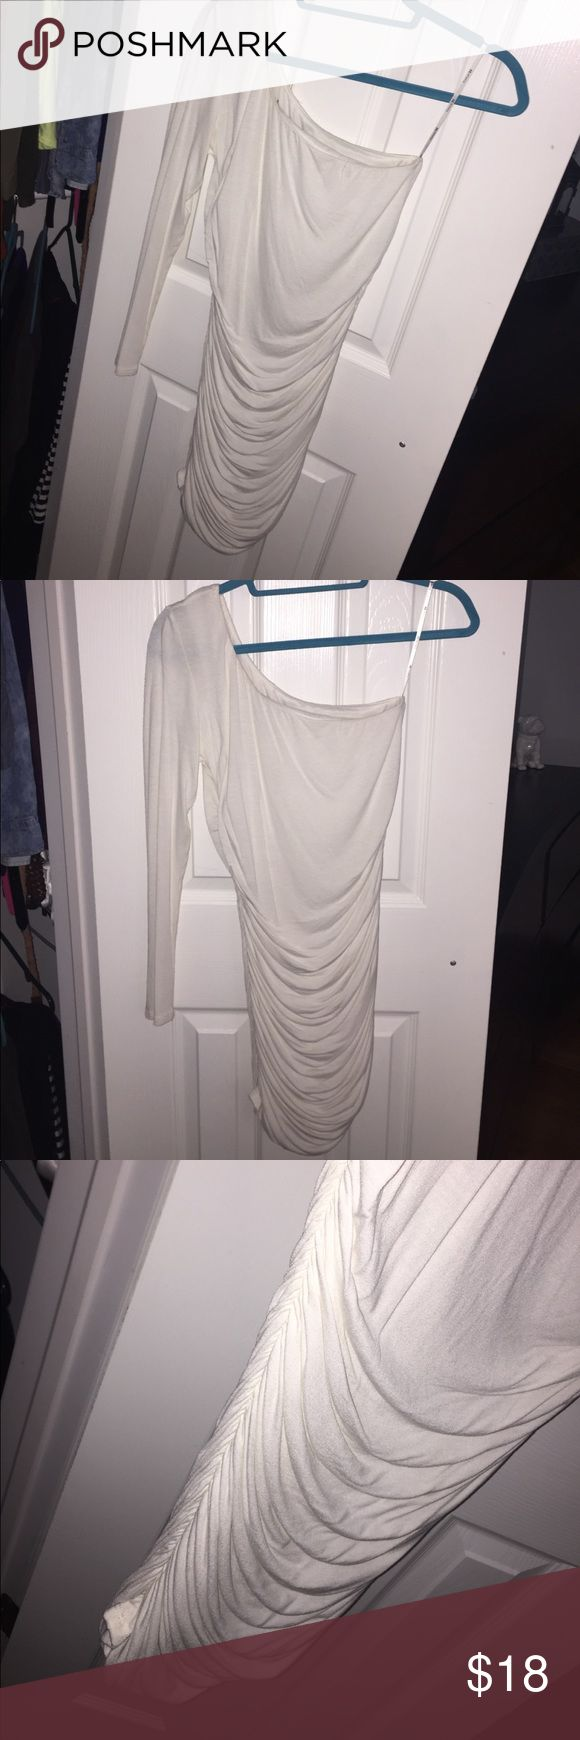 One Shoulder White Dress Cream colored one Shoulder dress from Forever 21. Worn once, hand washed. Forever 21 Dresses One Shoulder